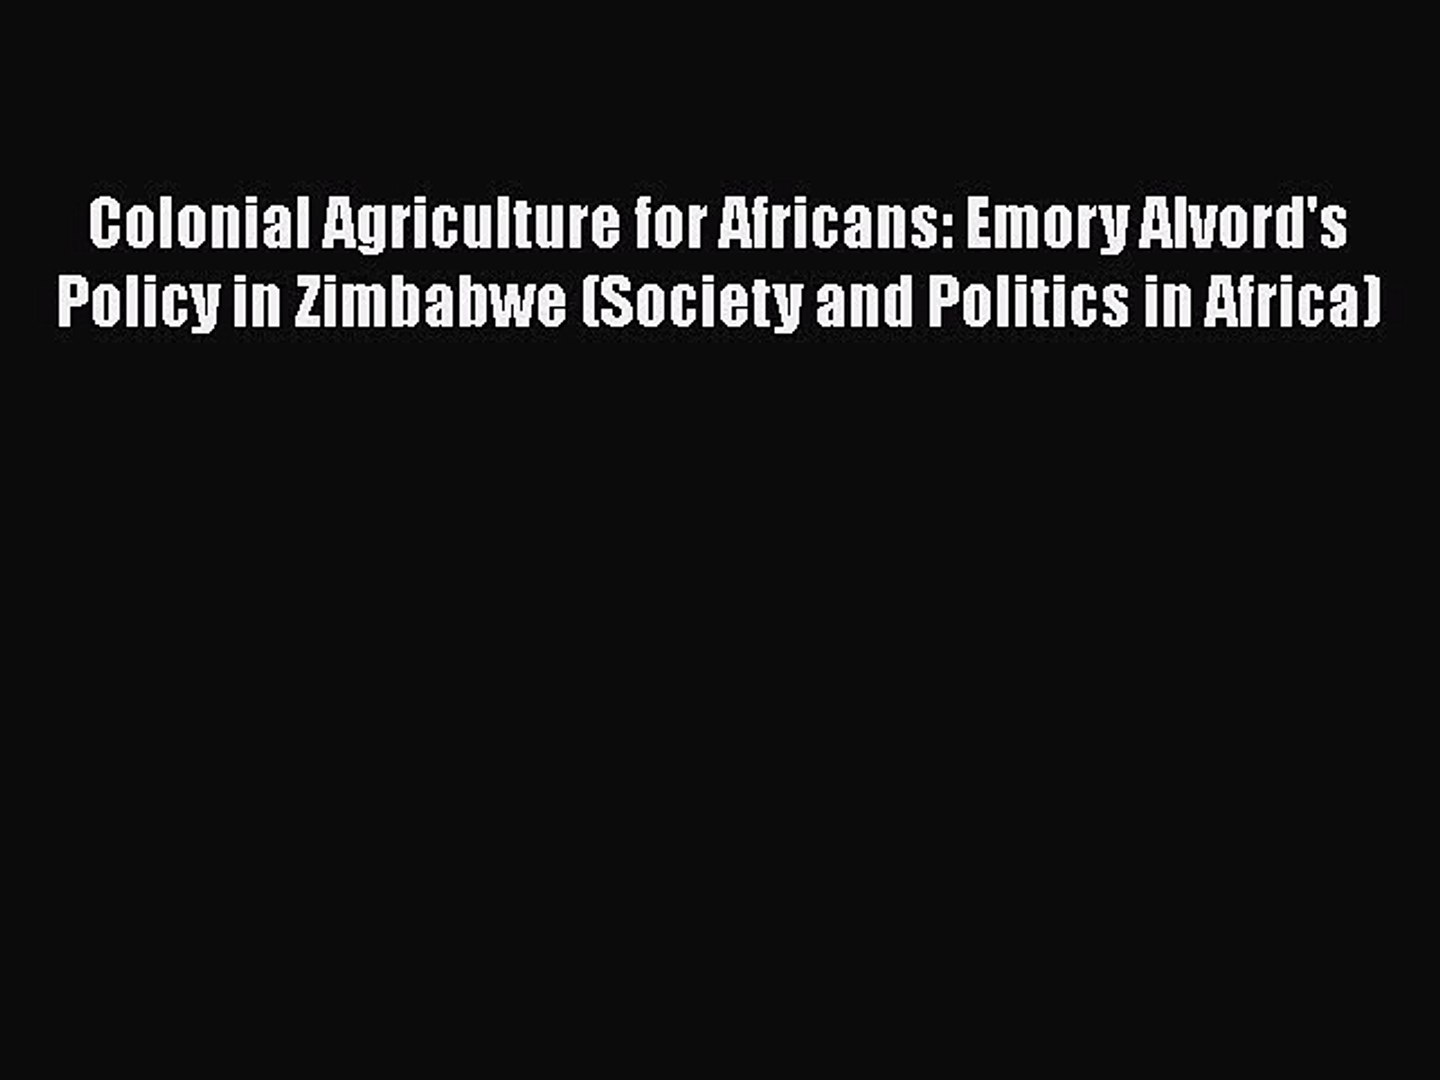 Colonial Agriculture for Africans: Emory Alvord's Policy in Zimbabwe (Society and Politics